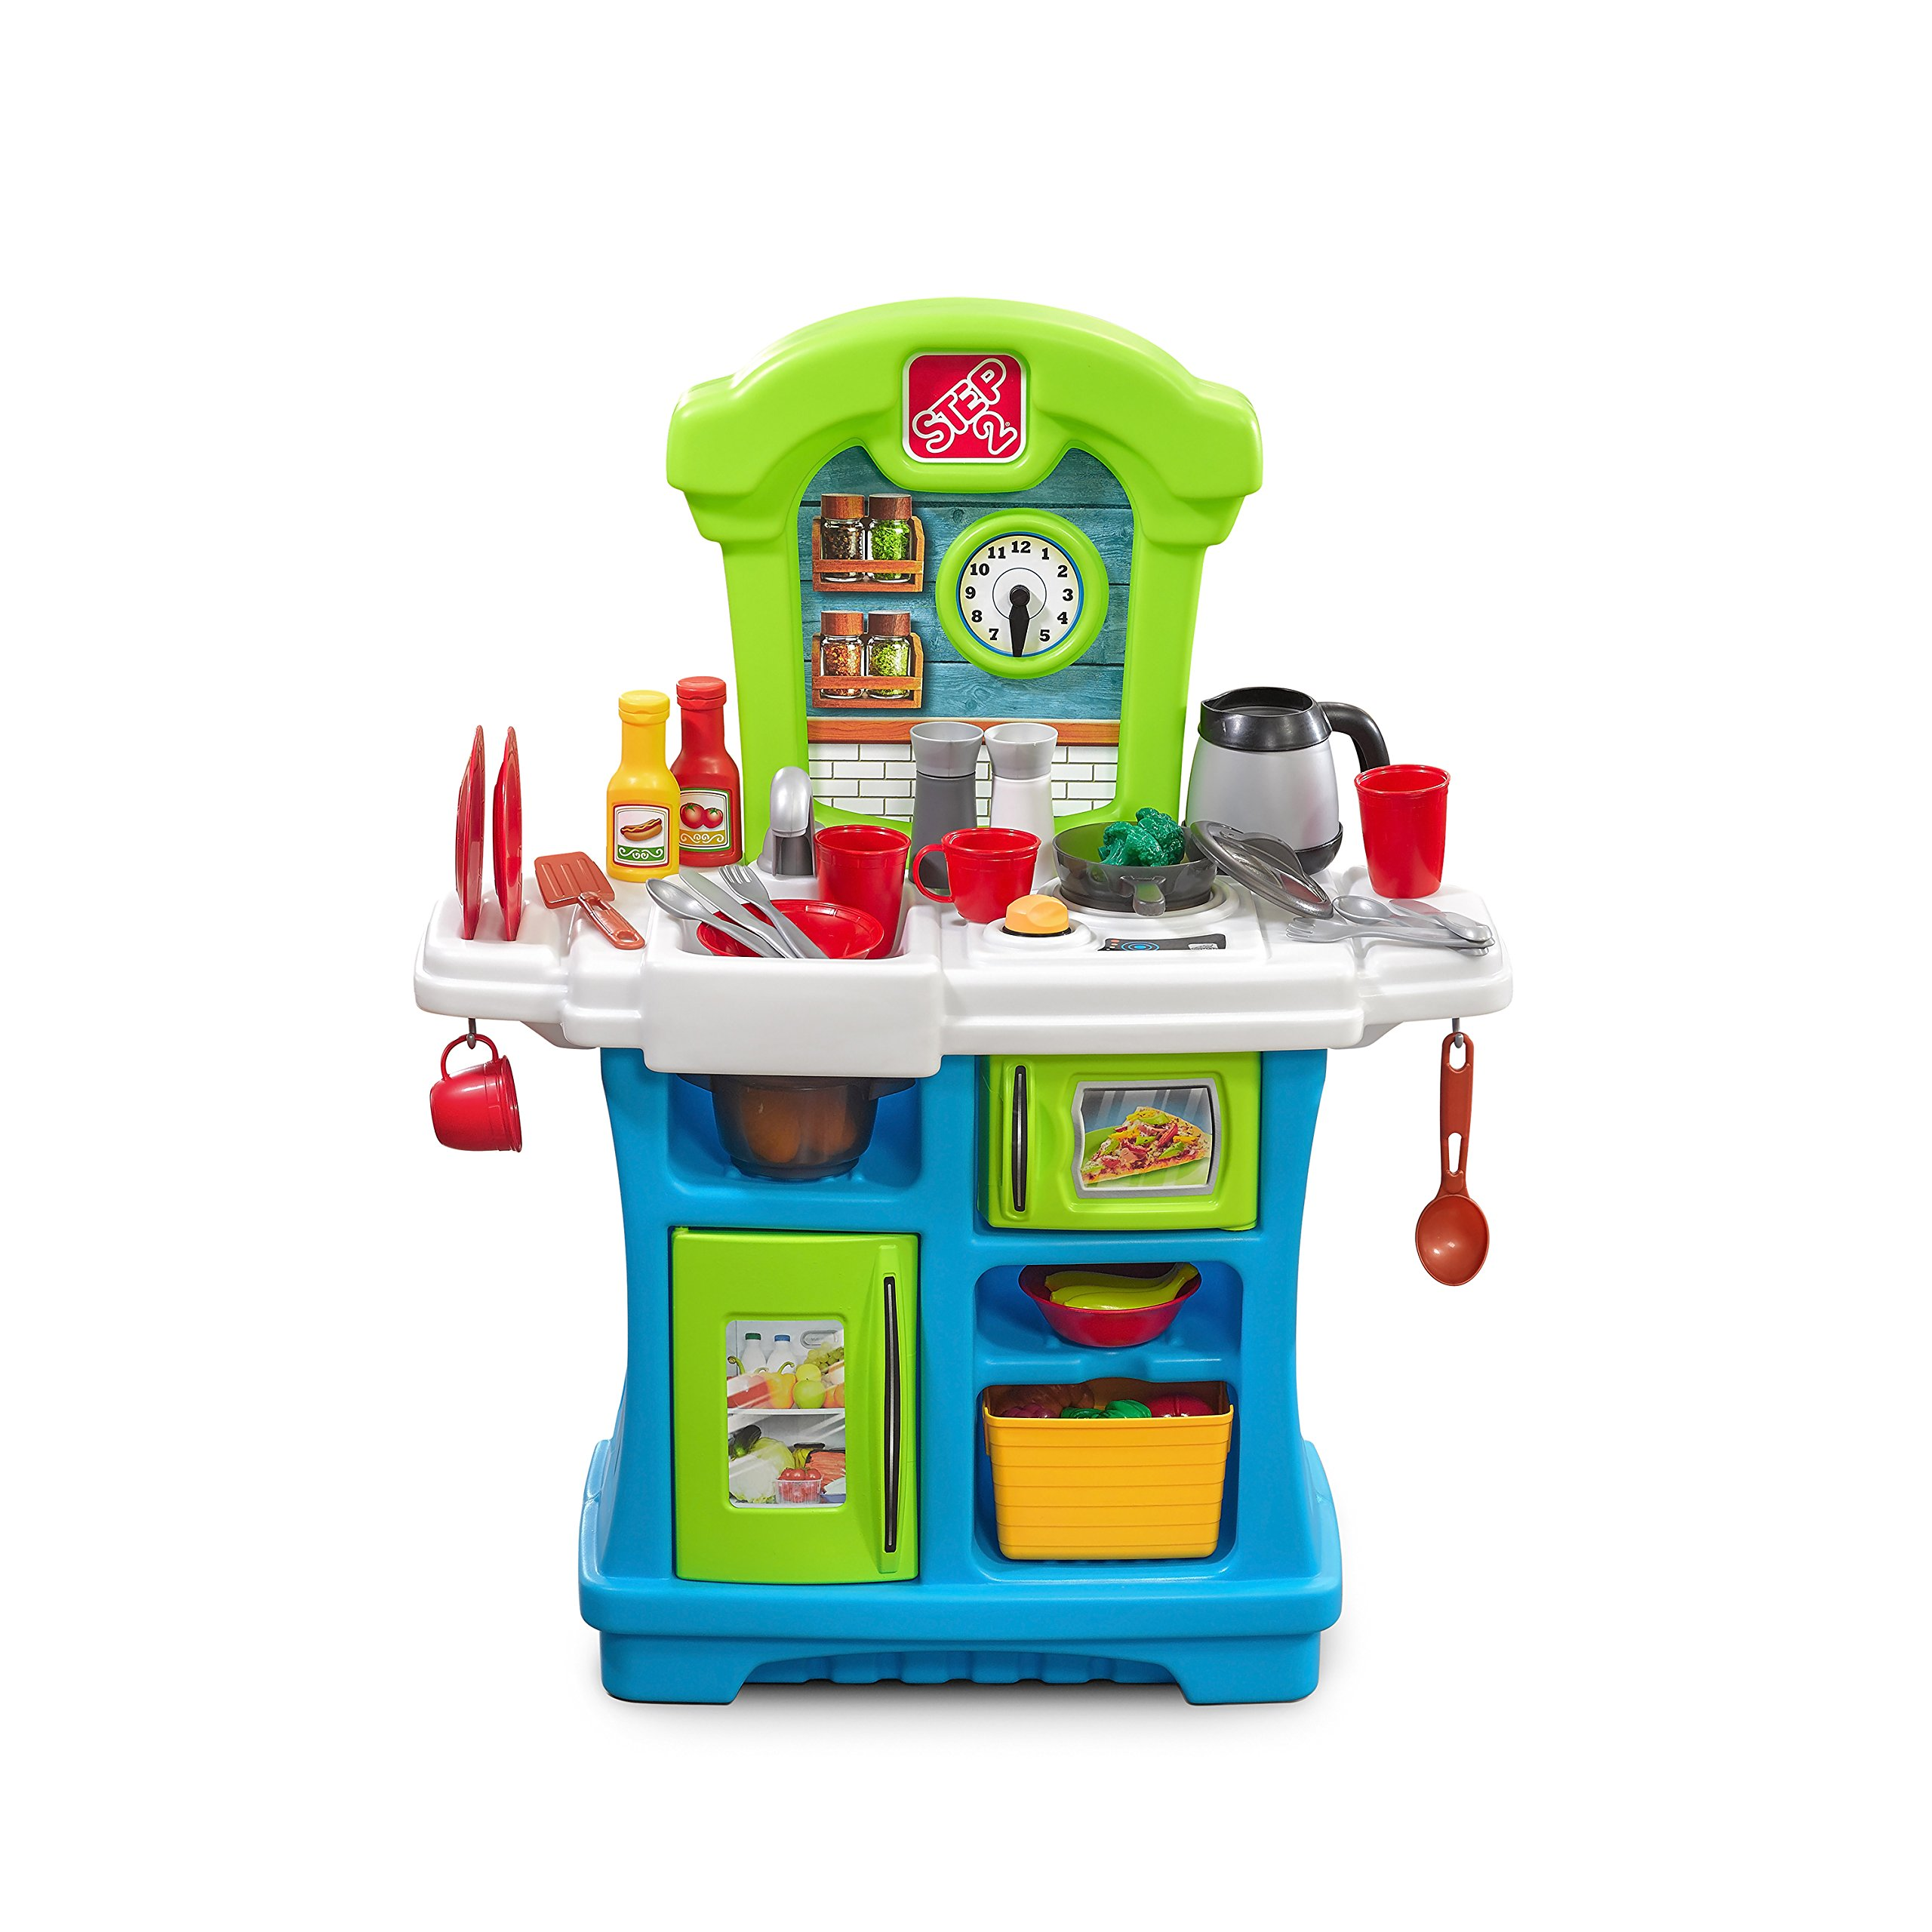 Step2 Little Cooks Kitchen   Play Kitchen for Toddlers & Toy Accessories Set   Kids Kitchen Playset with Realistic Sounds by Step2